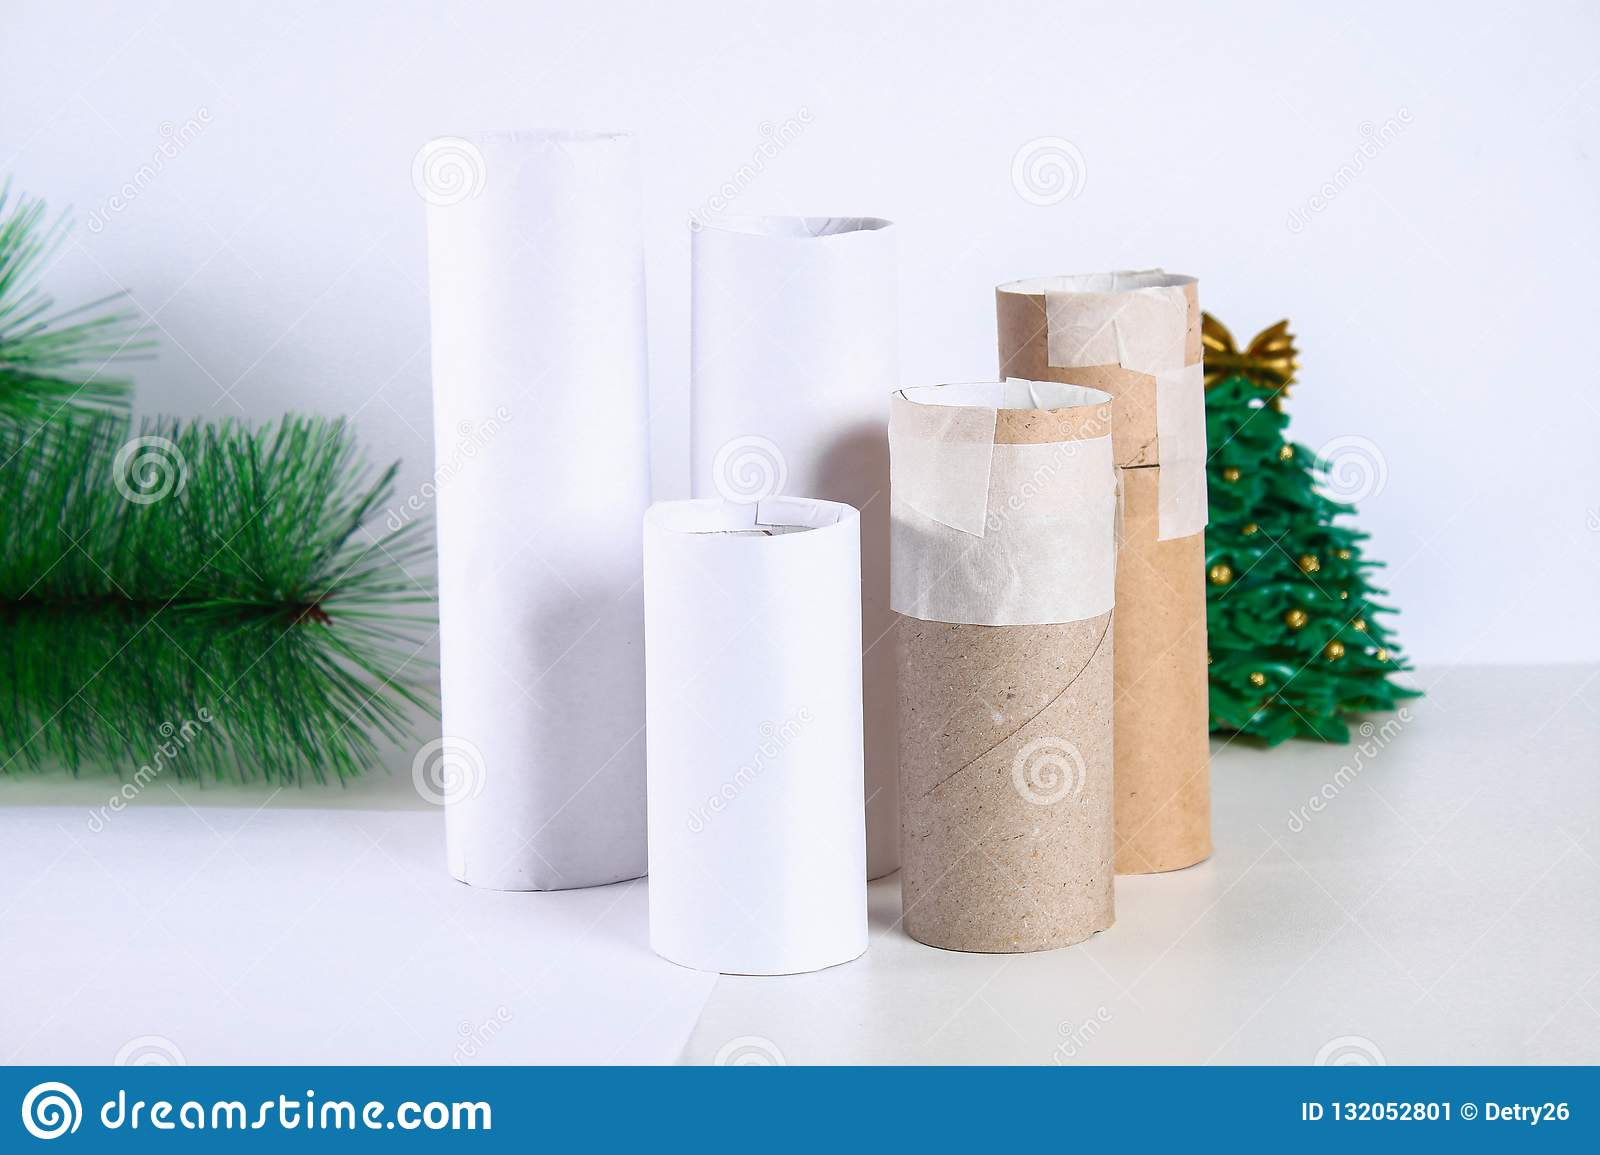 How To Make White Christmas Candles Plugs Toilet Paper Rolls